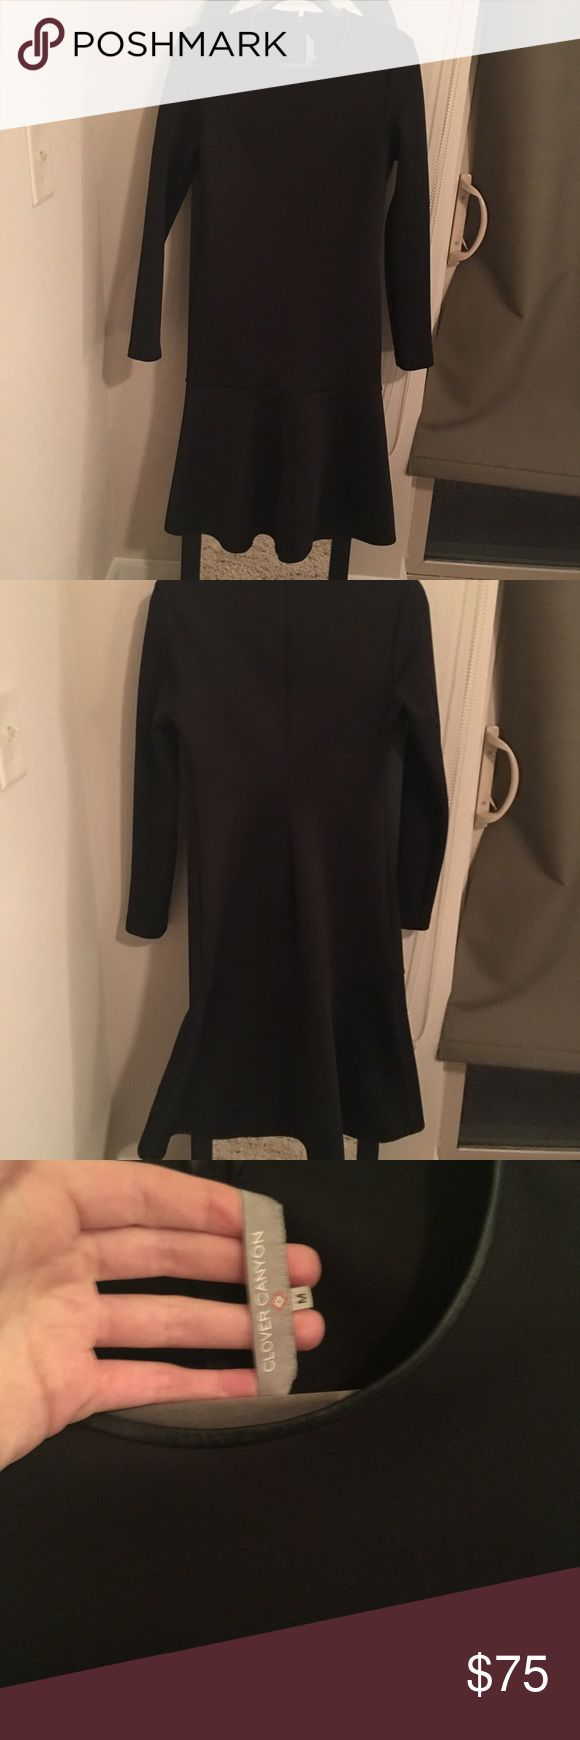 Clover Canyon Dress Stunning Clover Canyon black scuba midi dress size Medium. Long sleeve with a ruffle bottom. Leather trim on the collar. Form fitting throughout, with the ruffle at the bottom adding a bit of flare. Scuba fabric is very figure flattering. Like new condition, no tags. Clover Canyon Dresses Midi